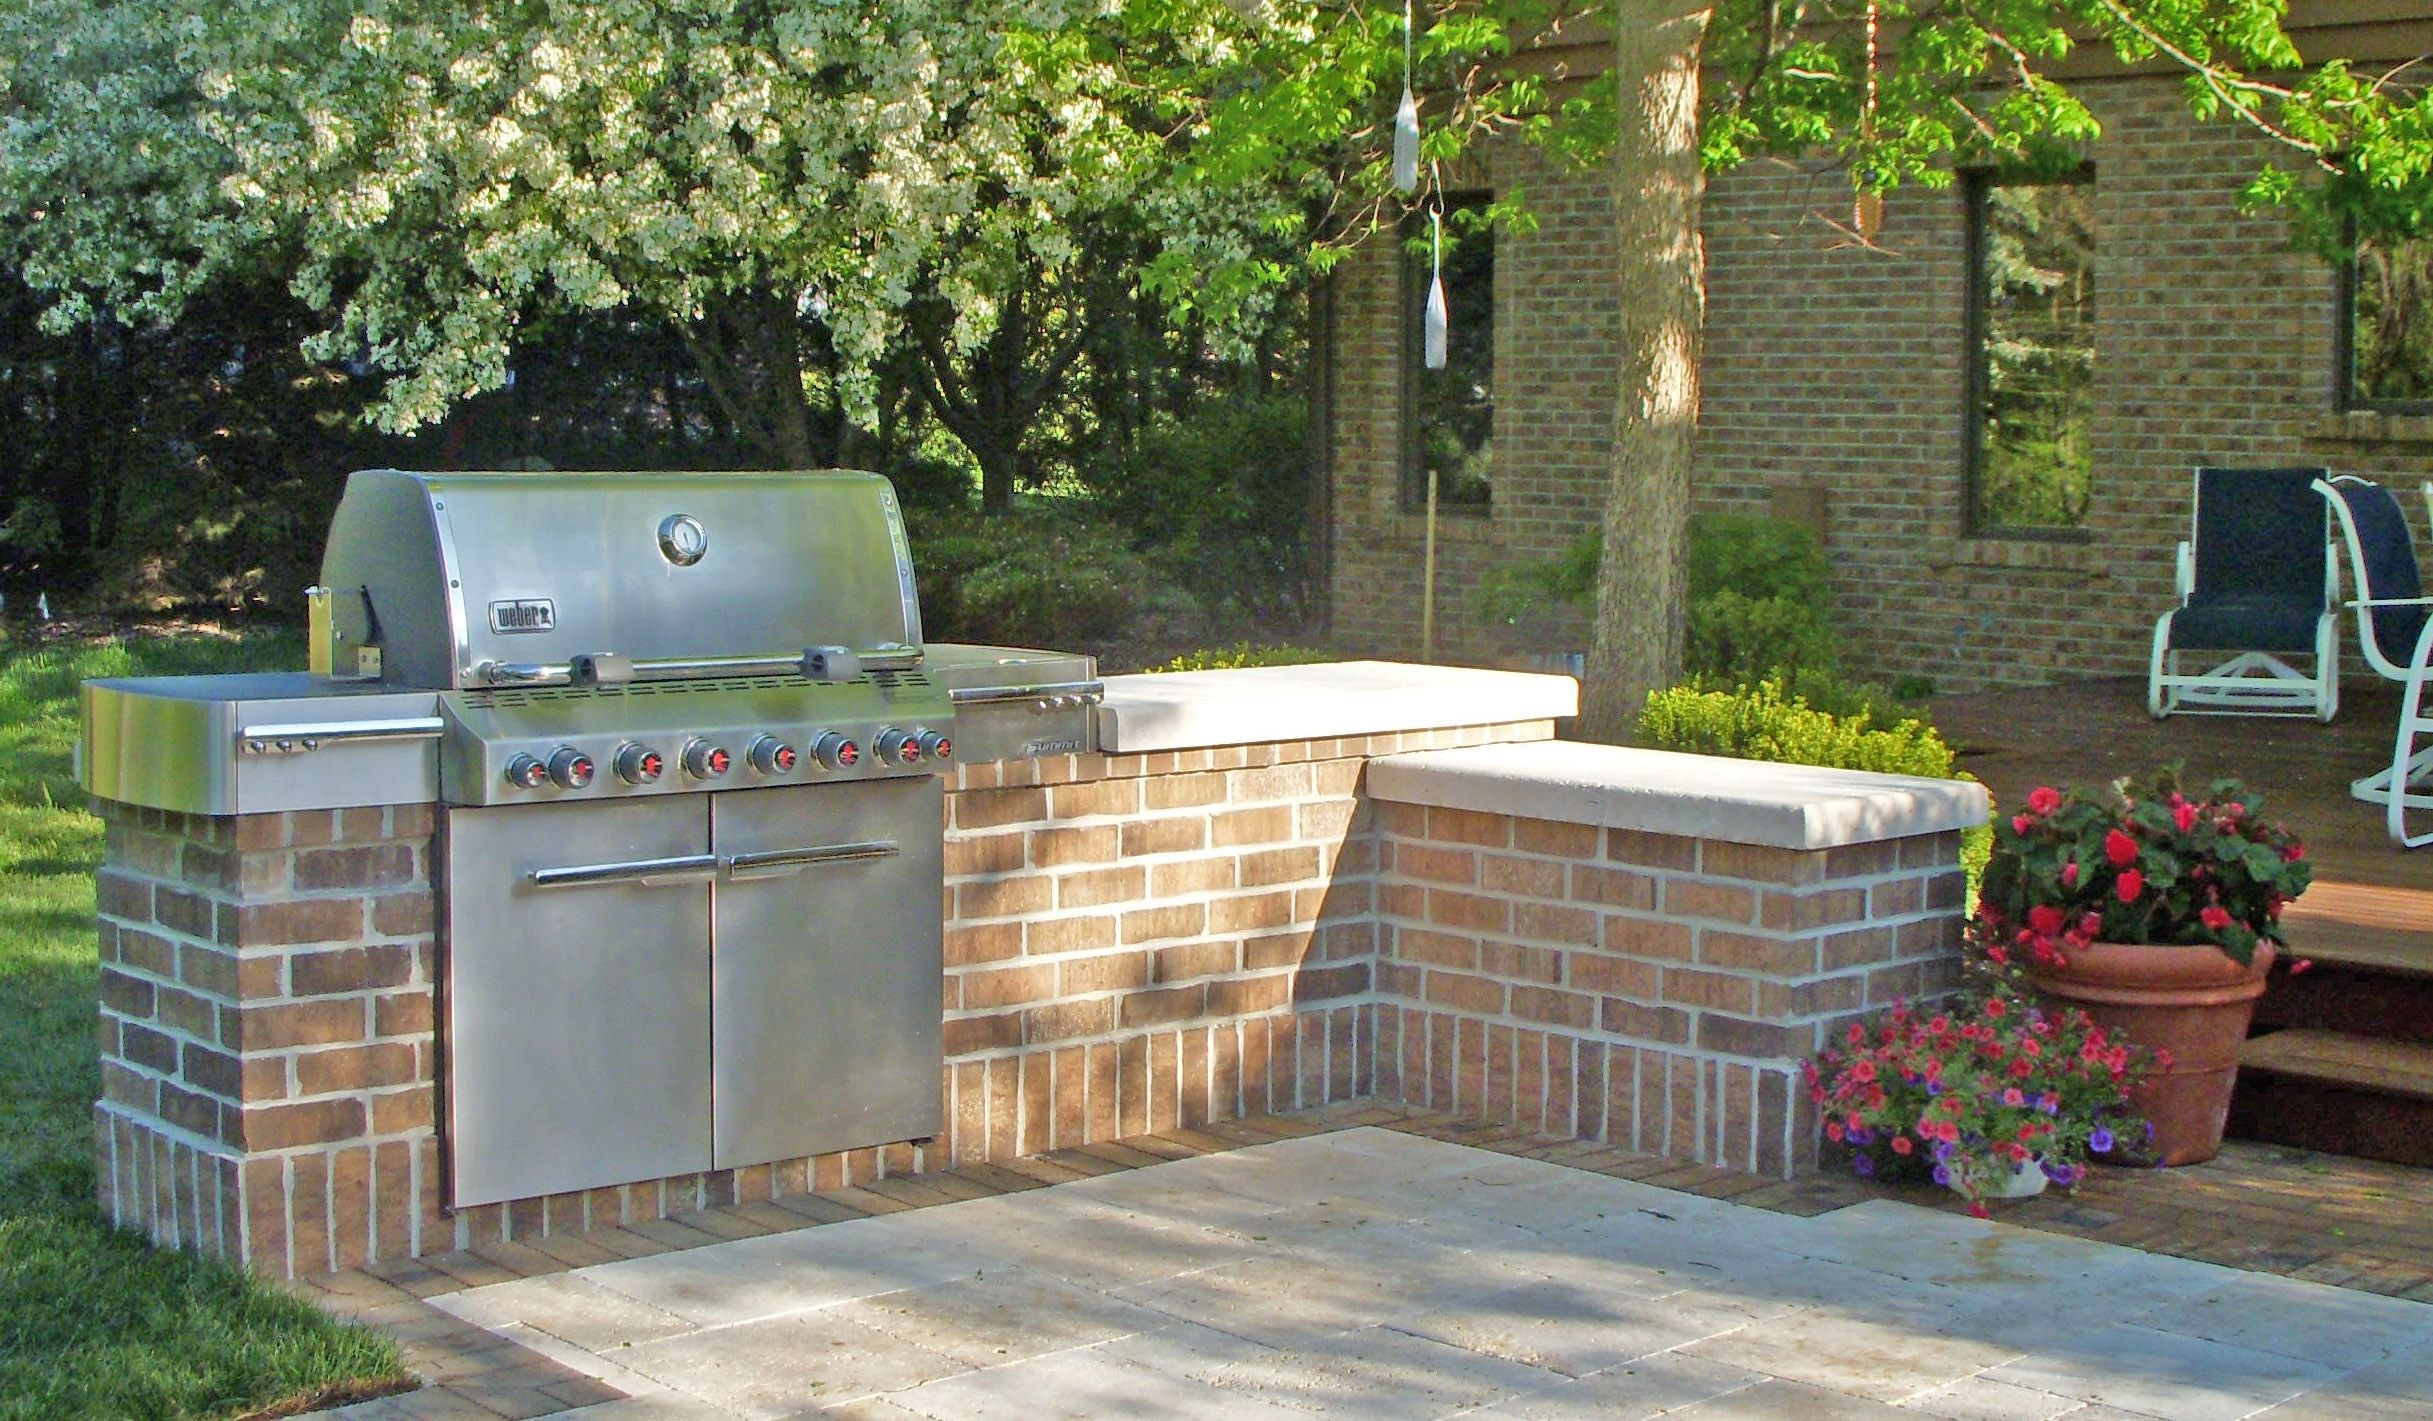 Gas Grill Built Into Mortared Brick Surround With Waukesha Buff Stone Cap Outdoor Barbeque Brick Built Bbq Brick Bbq